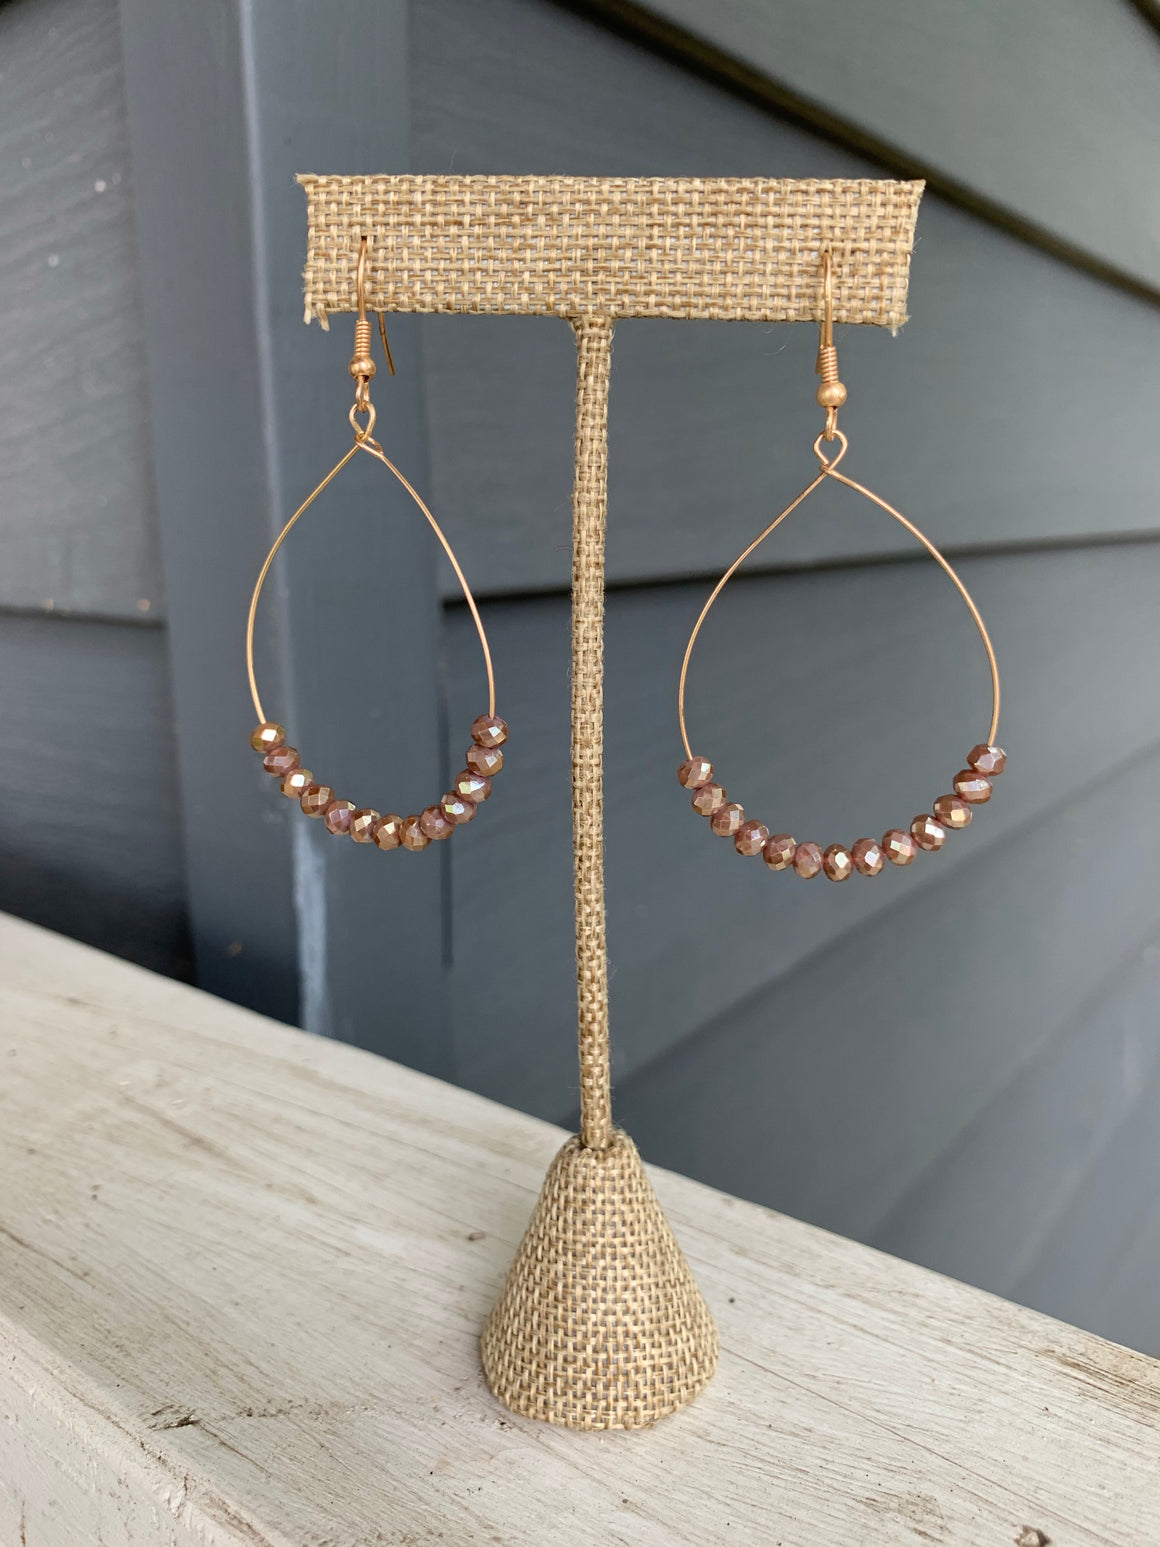 Glass beaded earrings on gold wire with ear hook.